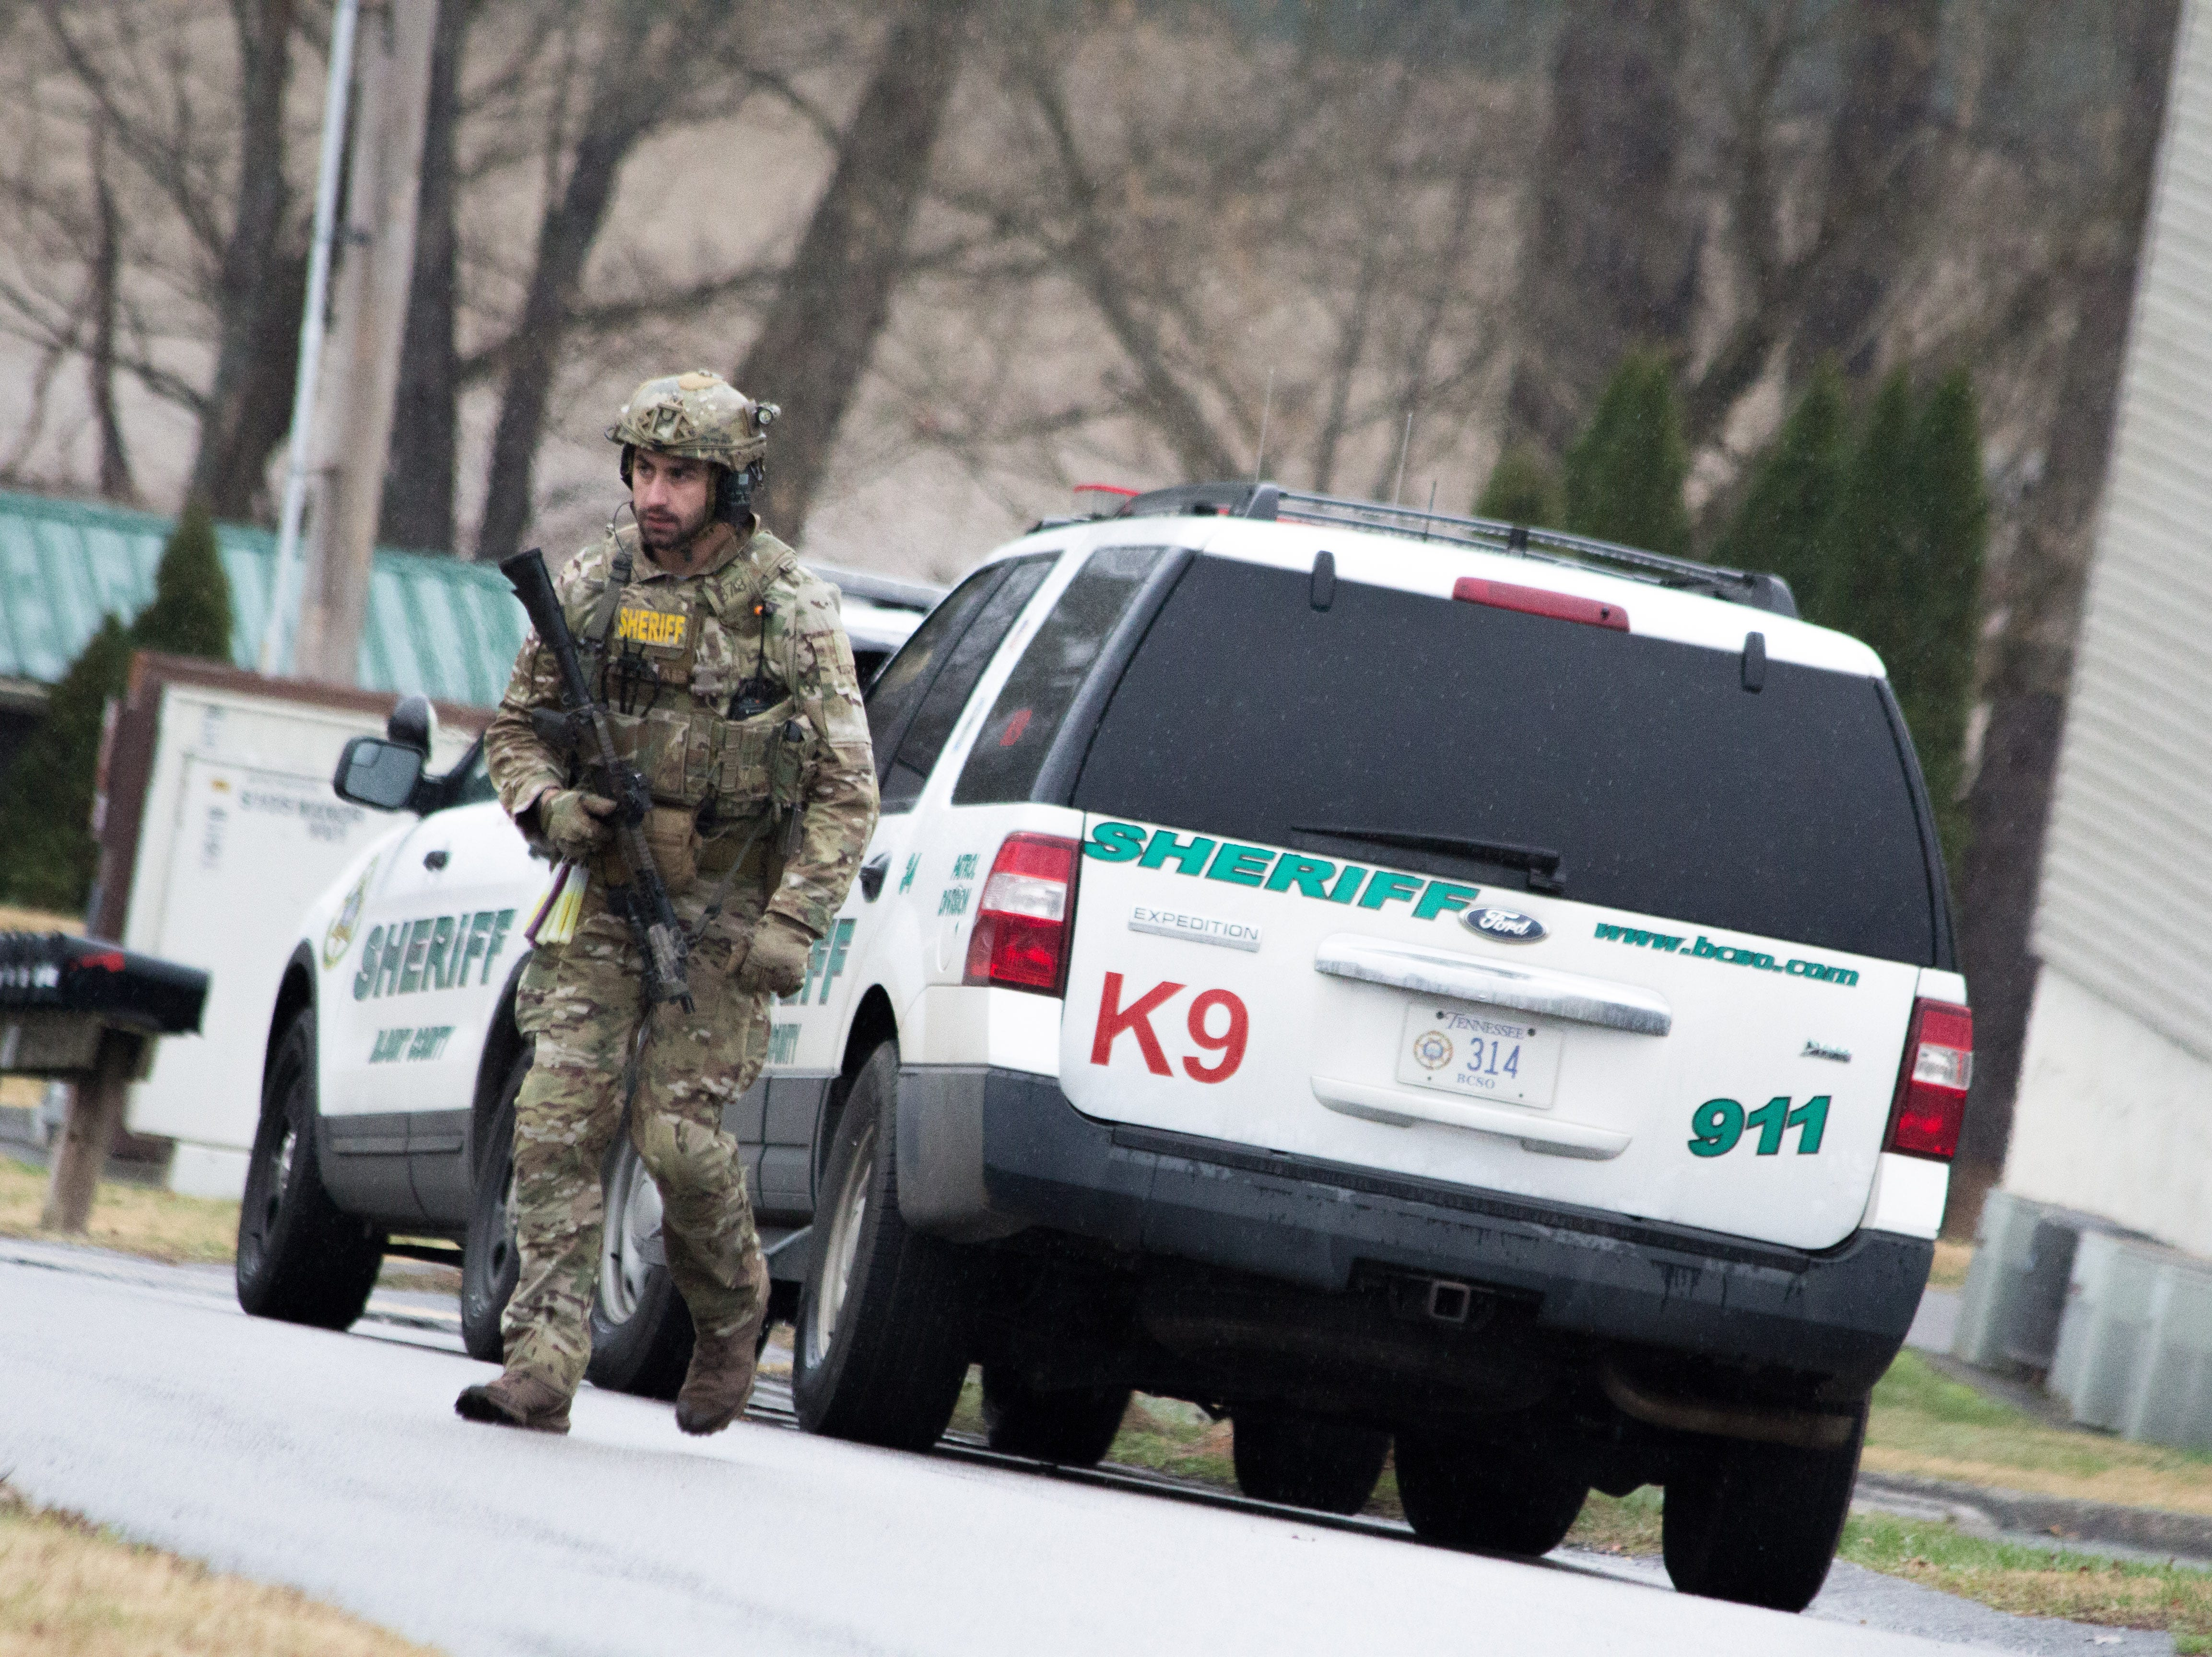 An officer stands near the scene of a standoff between the Blount County Sheriff's Office and a 21-year-old man, who was killed following shots from officers and a self-inflicted wound on Dec. 8, 2018.